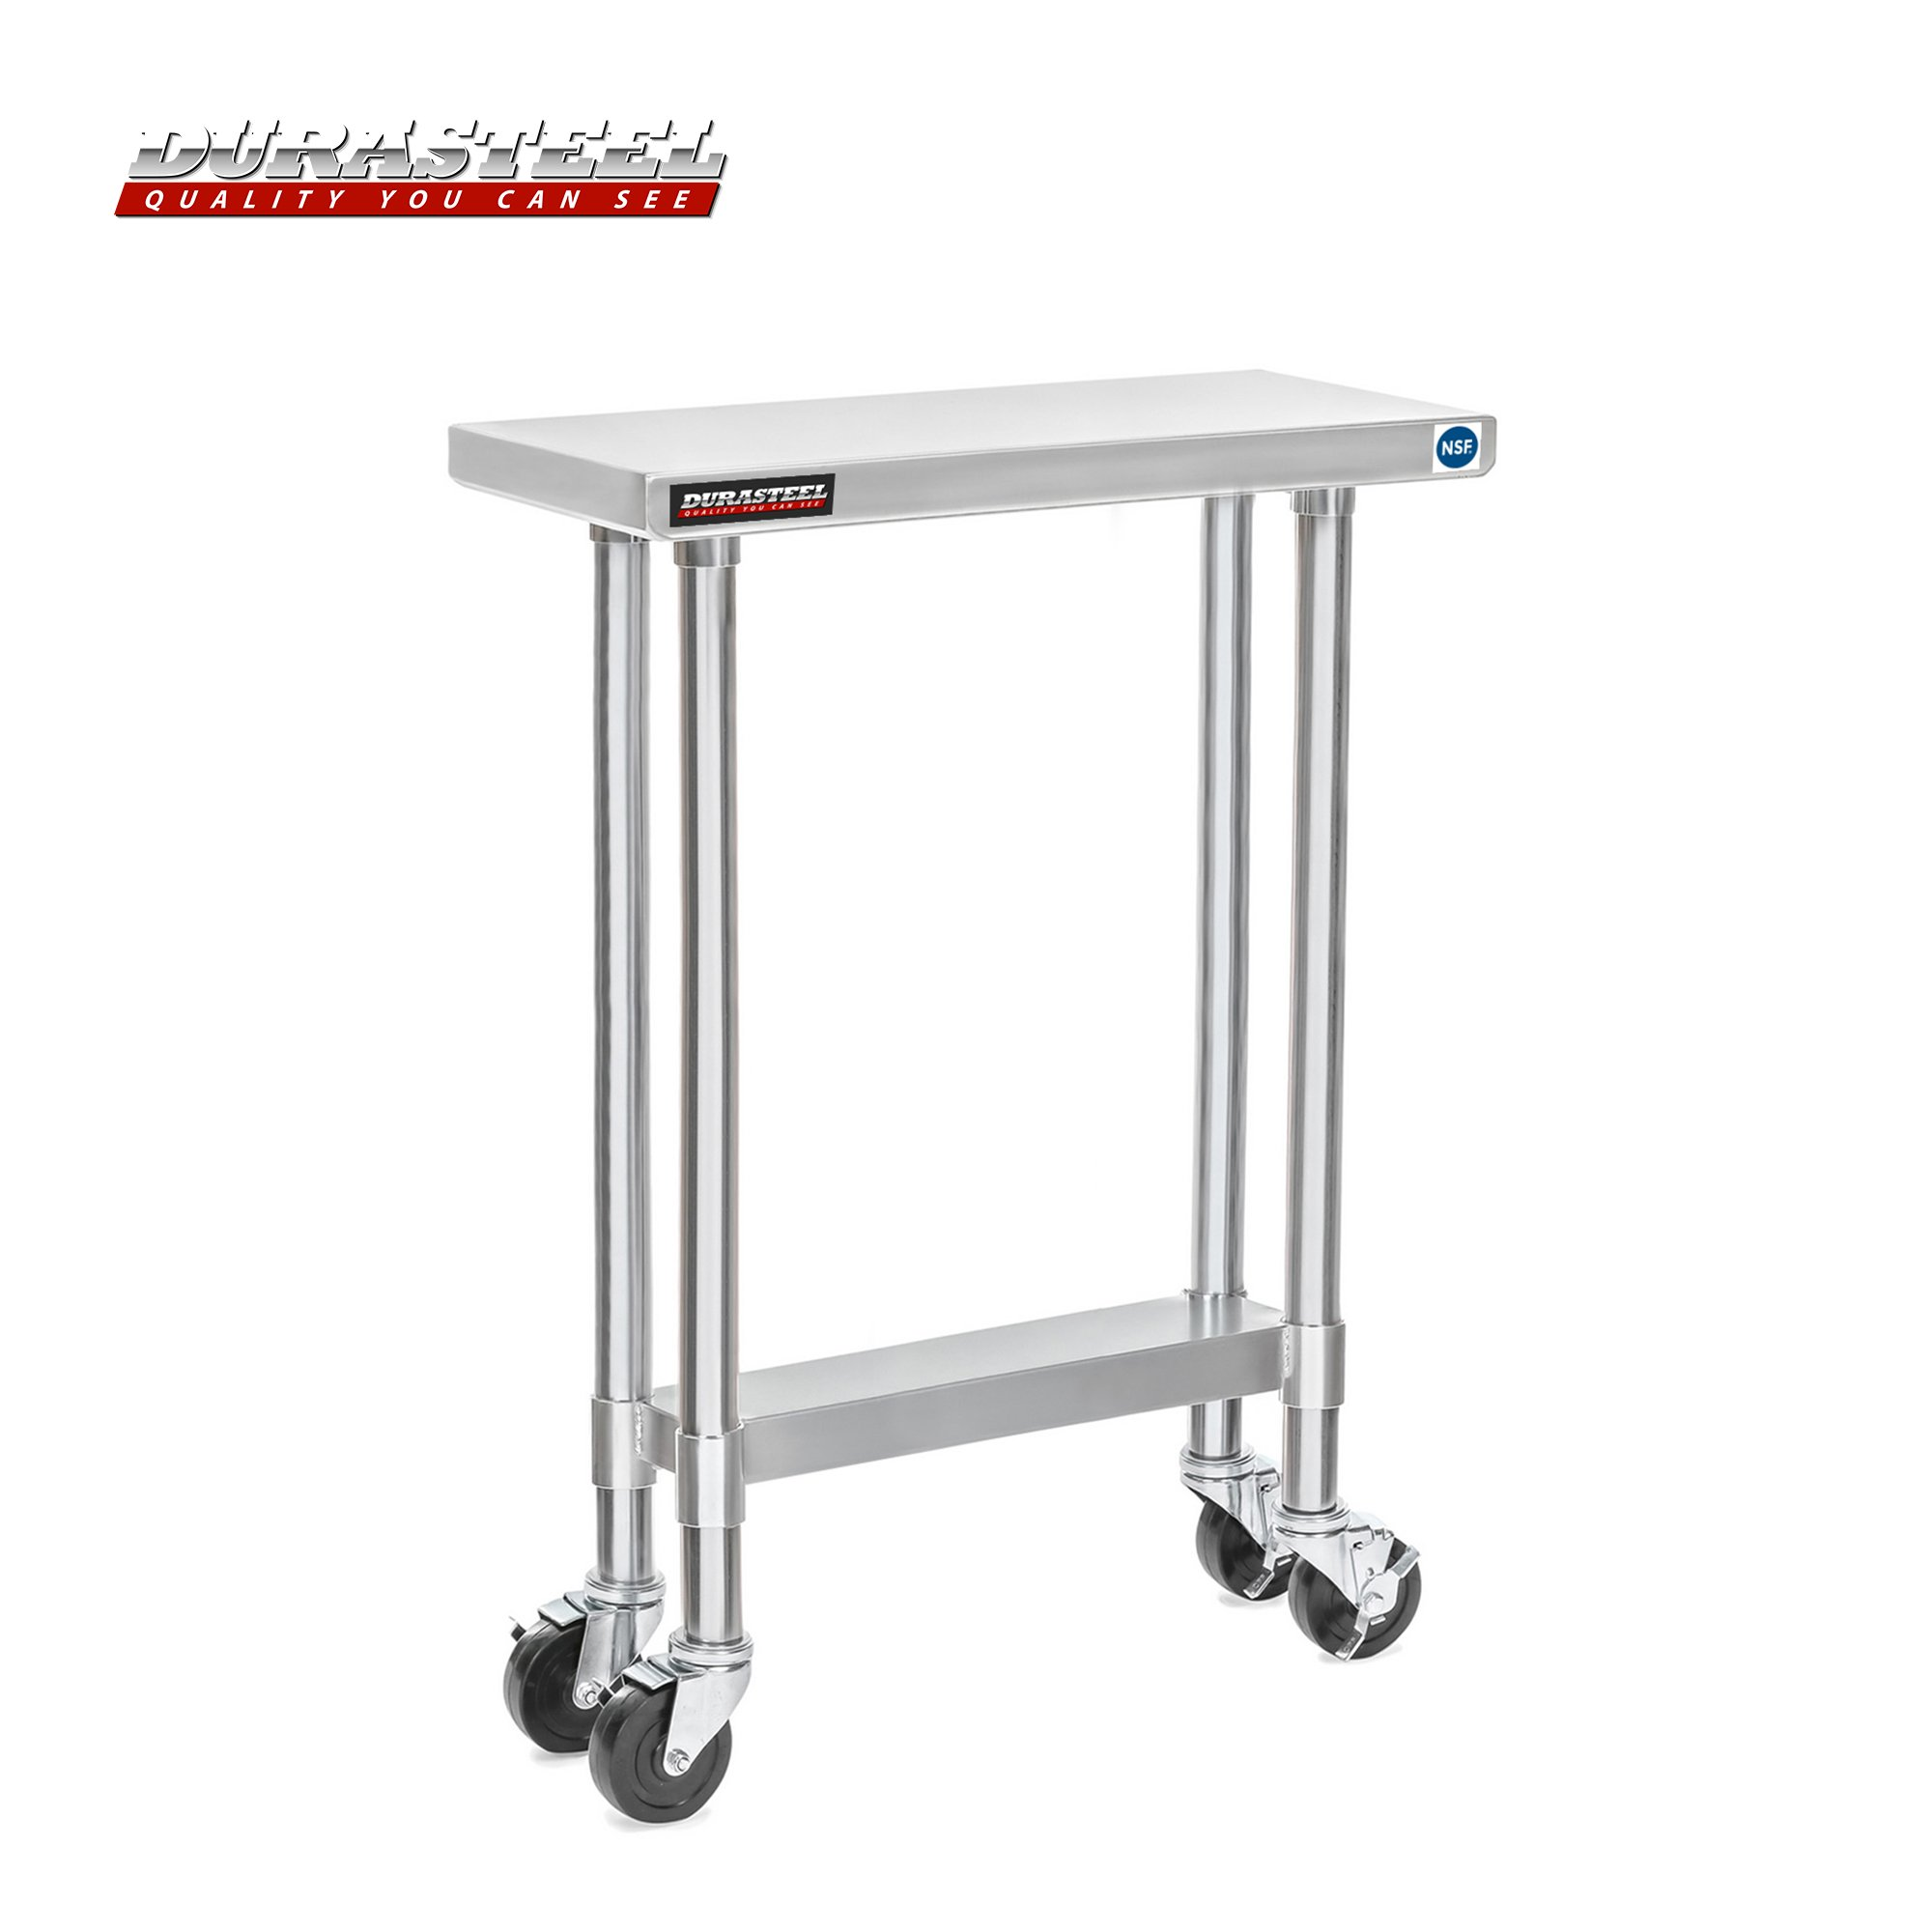 DuraSteel 30'' x 12'' x 35'' Height Worktable Stainless Steel Food Prep With 4 Caster Wheels Work Table- Commercial Grade Work Table - Good For Restaurant, Business, Warehouse, Home, Kitchen, Garage by Apex